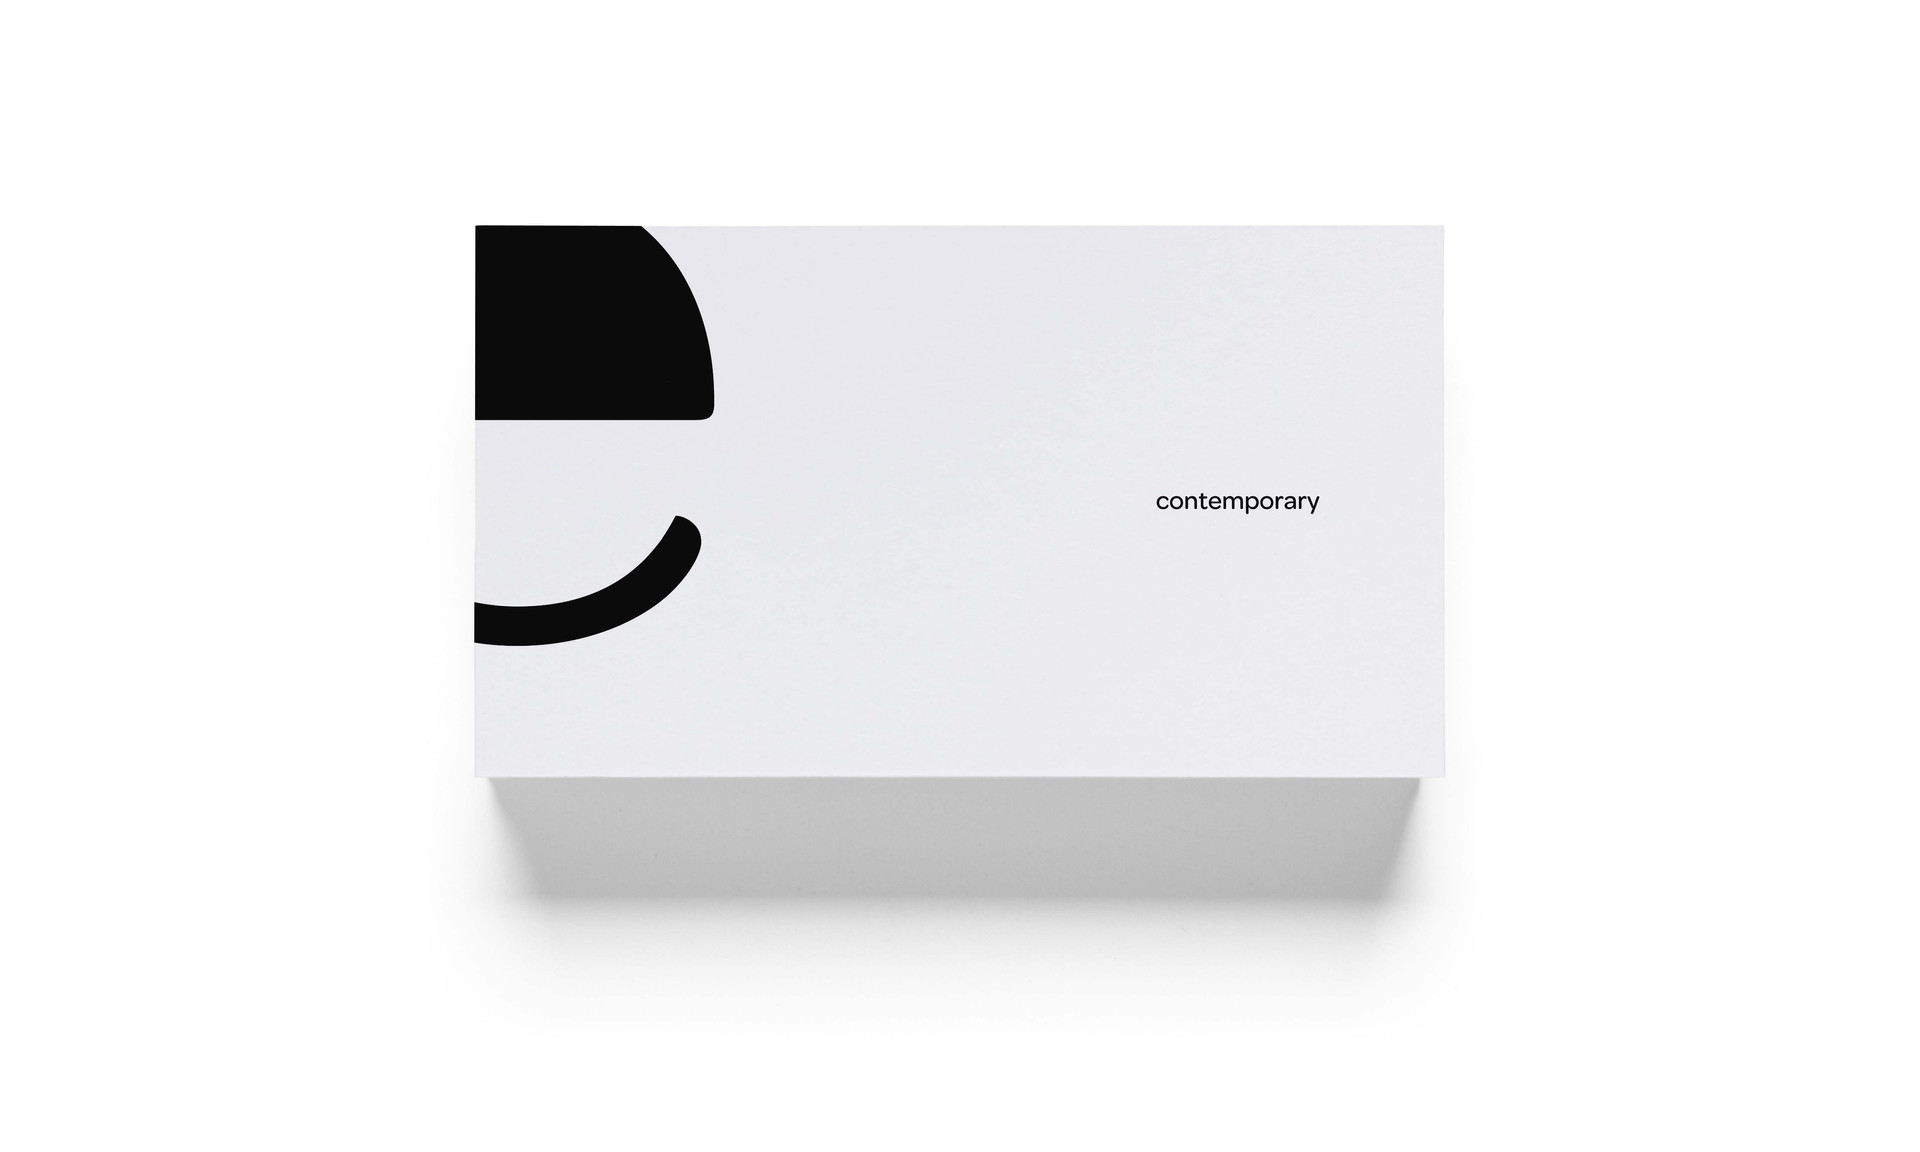 e contemporary gallery card.jpg